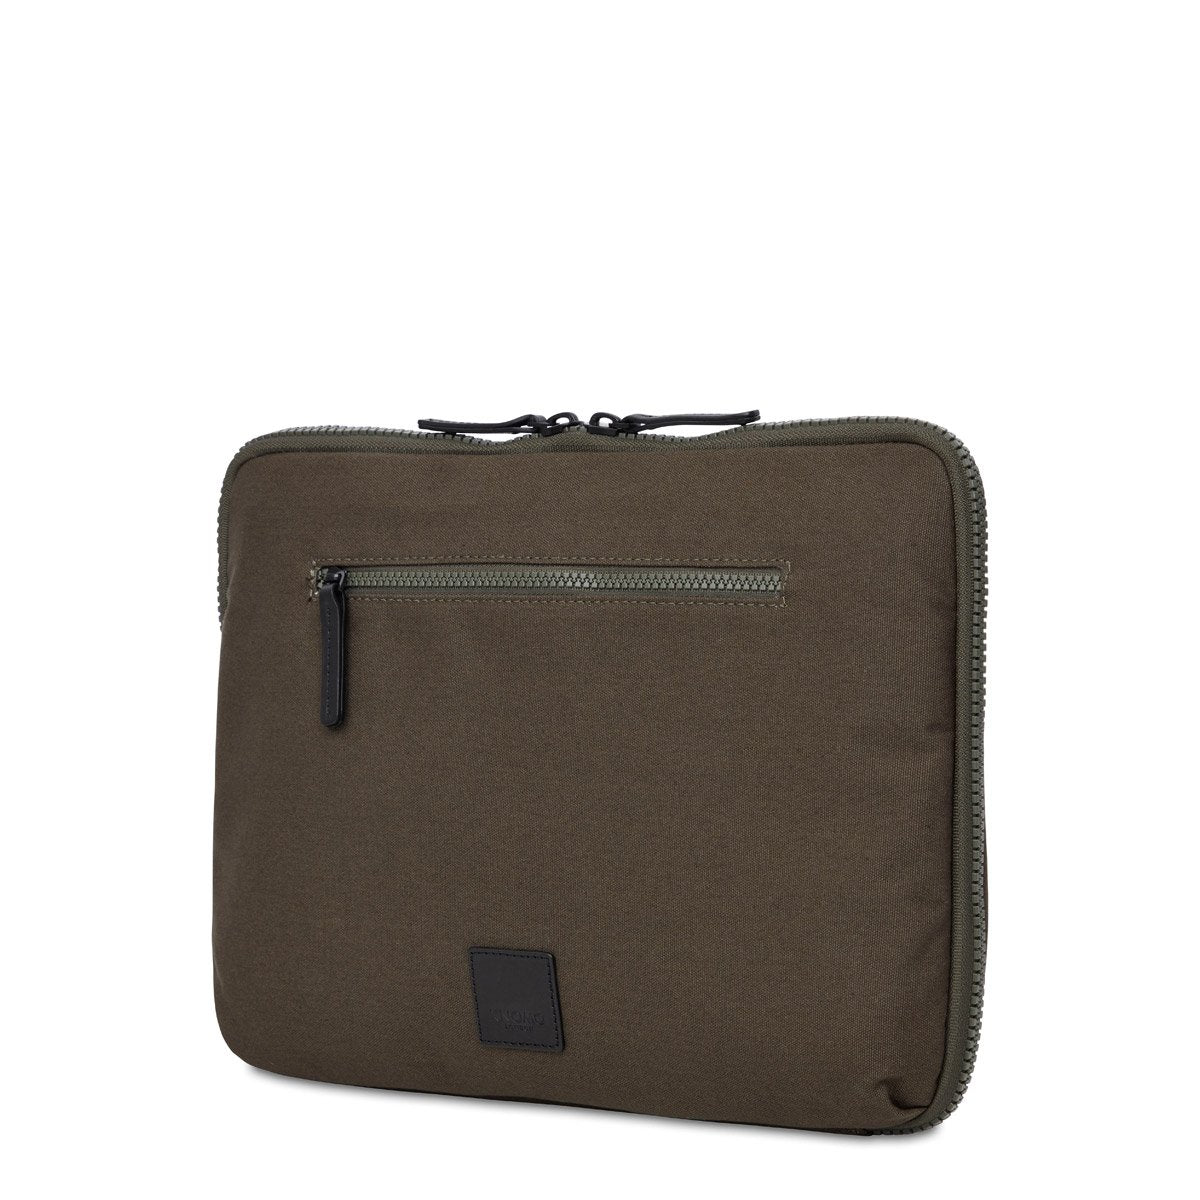 "Fulham Knomad Organiser Tech Organiser for Work - 13"" -  Dark Green 